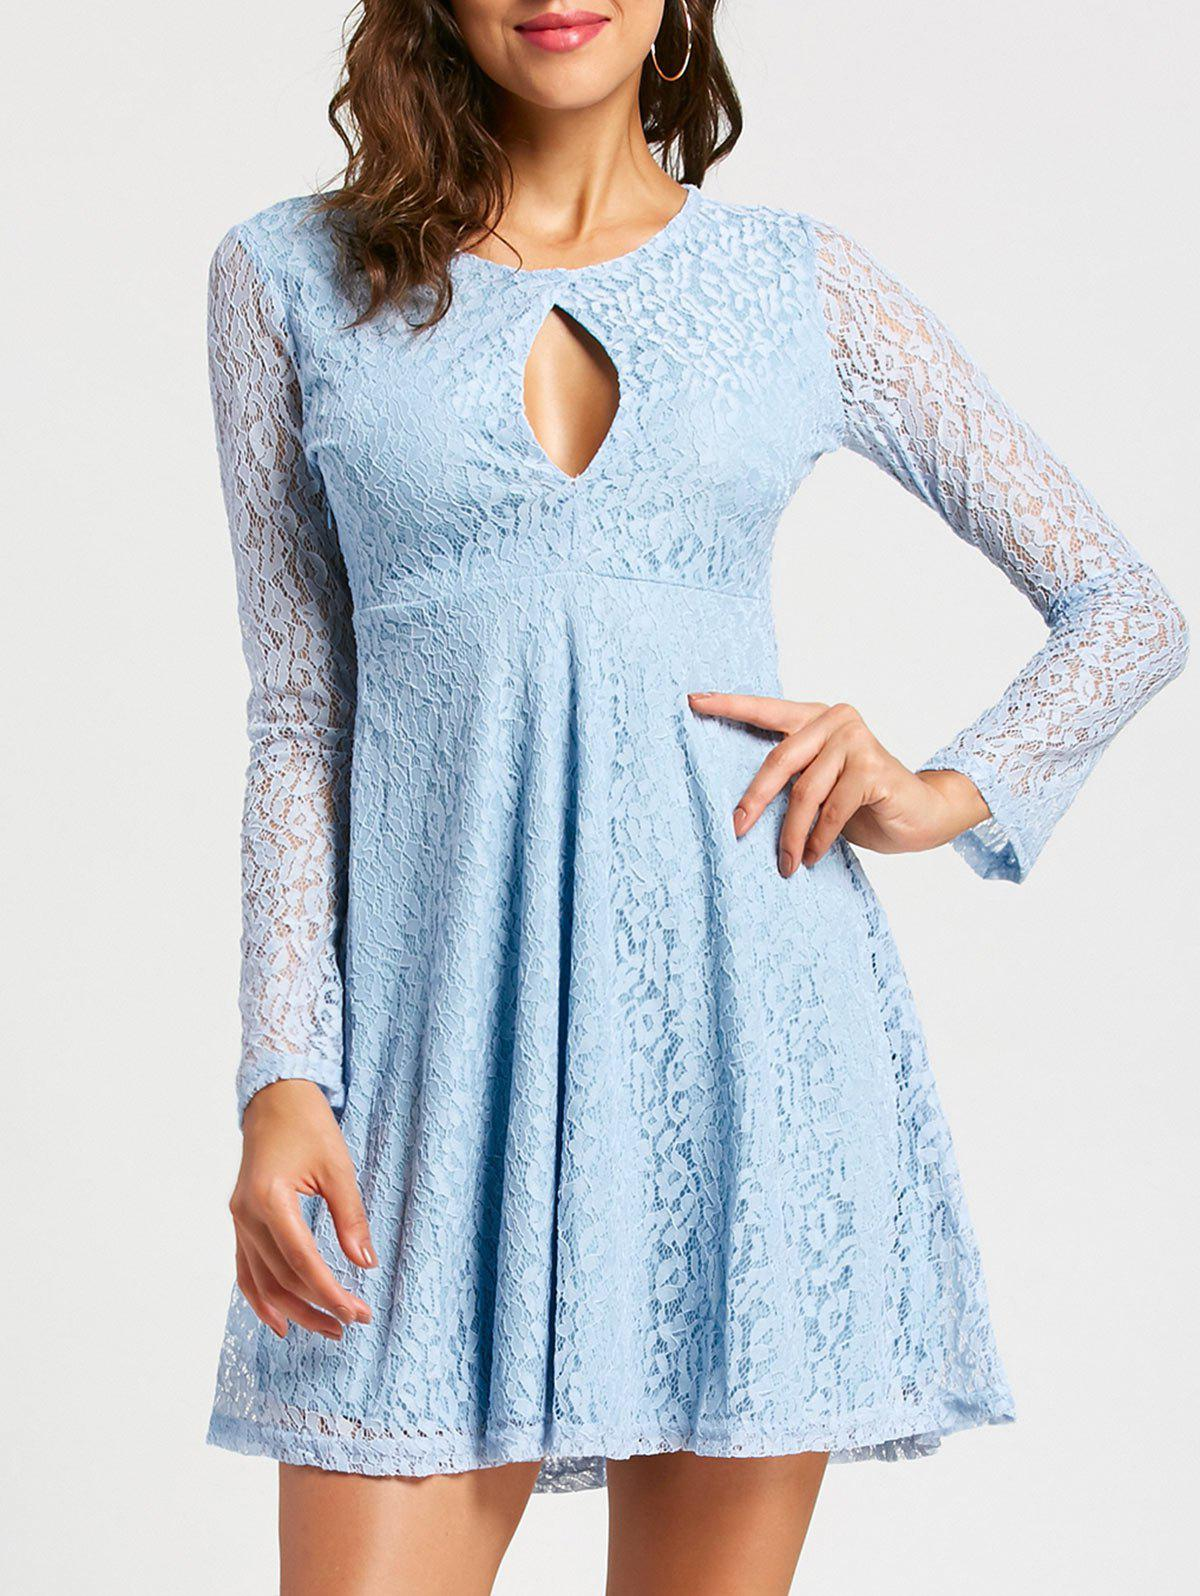 Long Sleeve Keyhole Empire Waist Lace Dress - LIGHT BLUE L